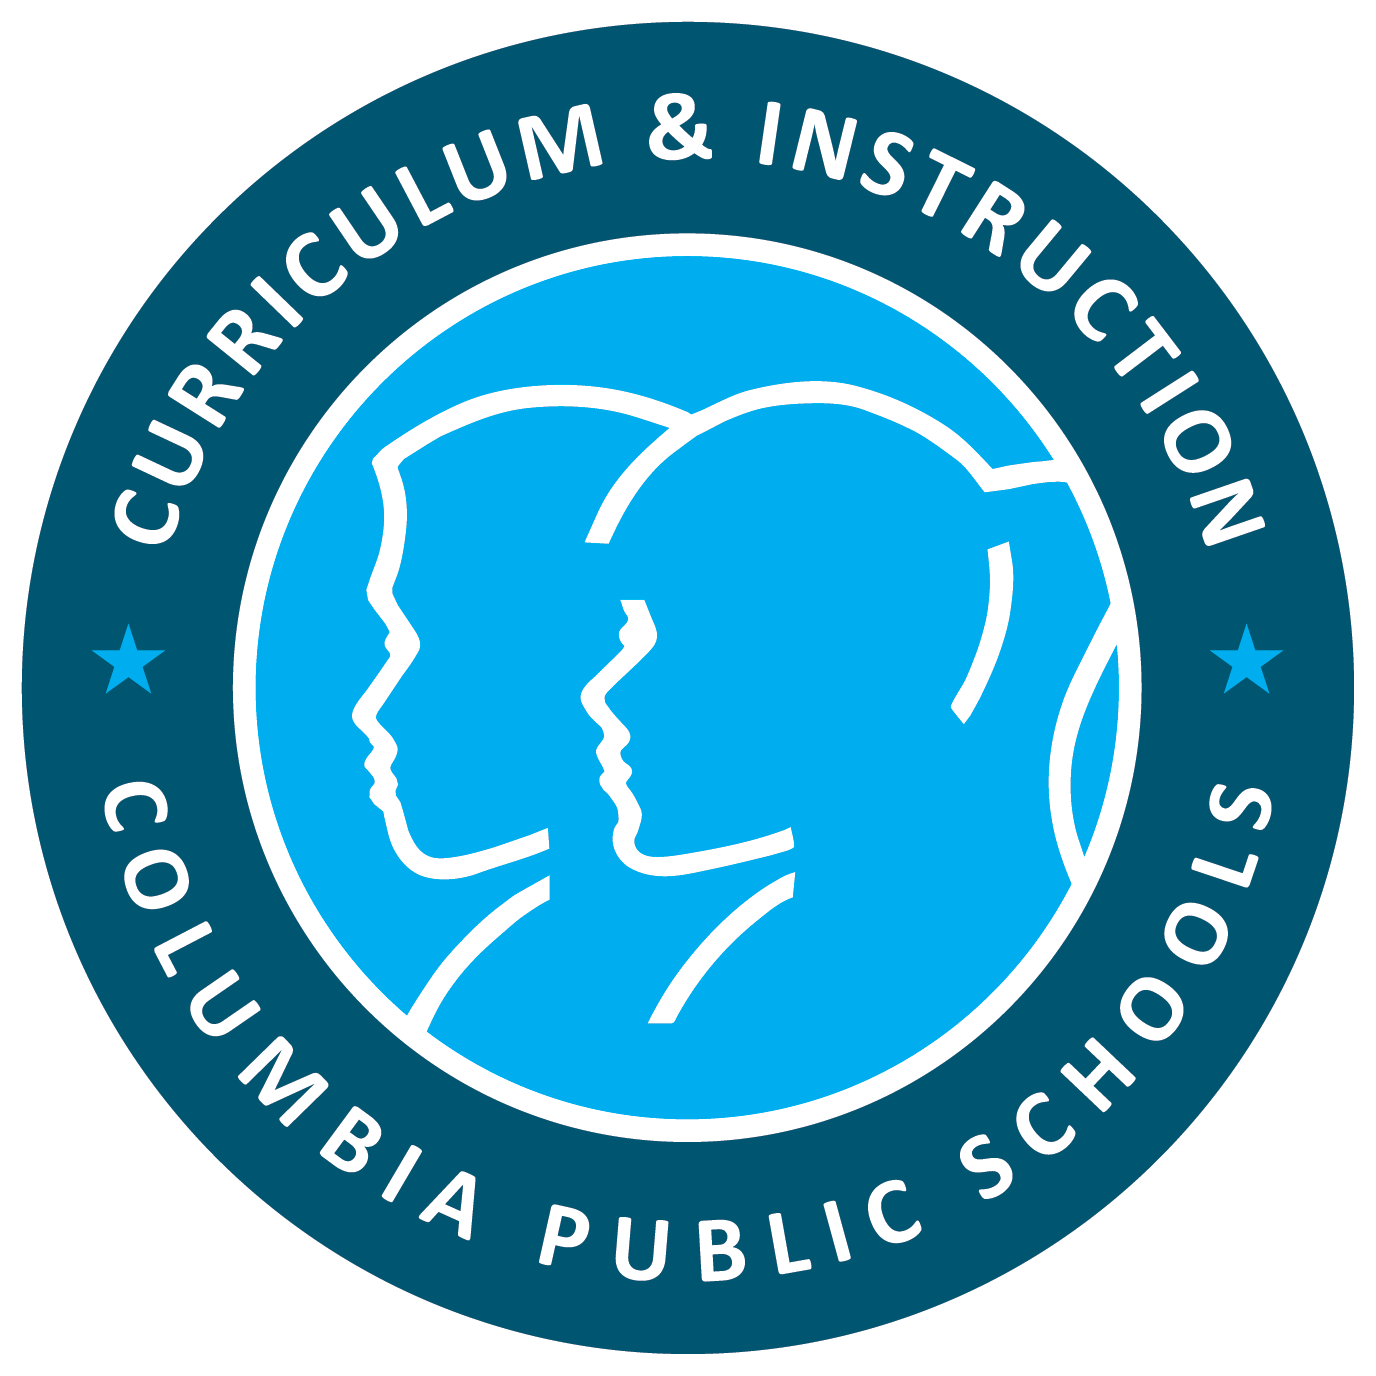 CurriculumInstructiontLogo